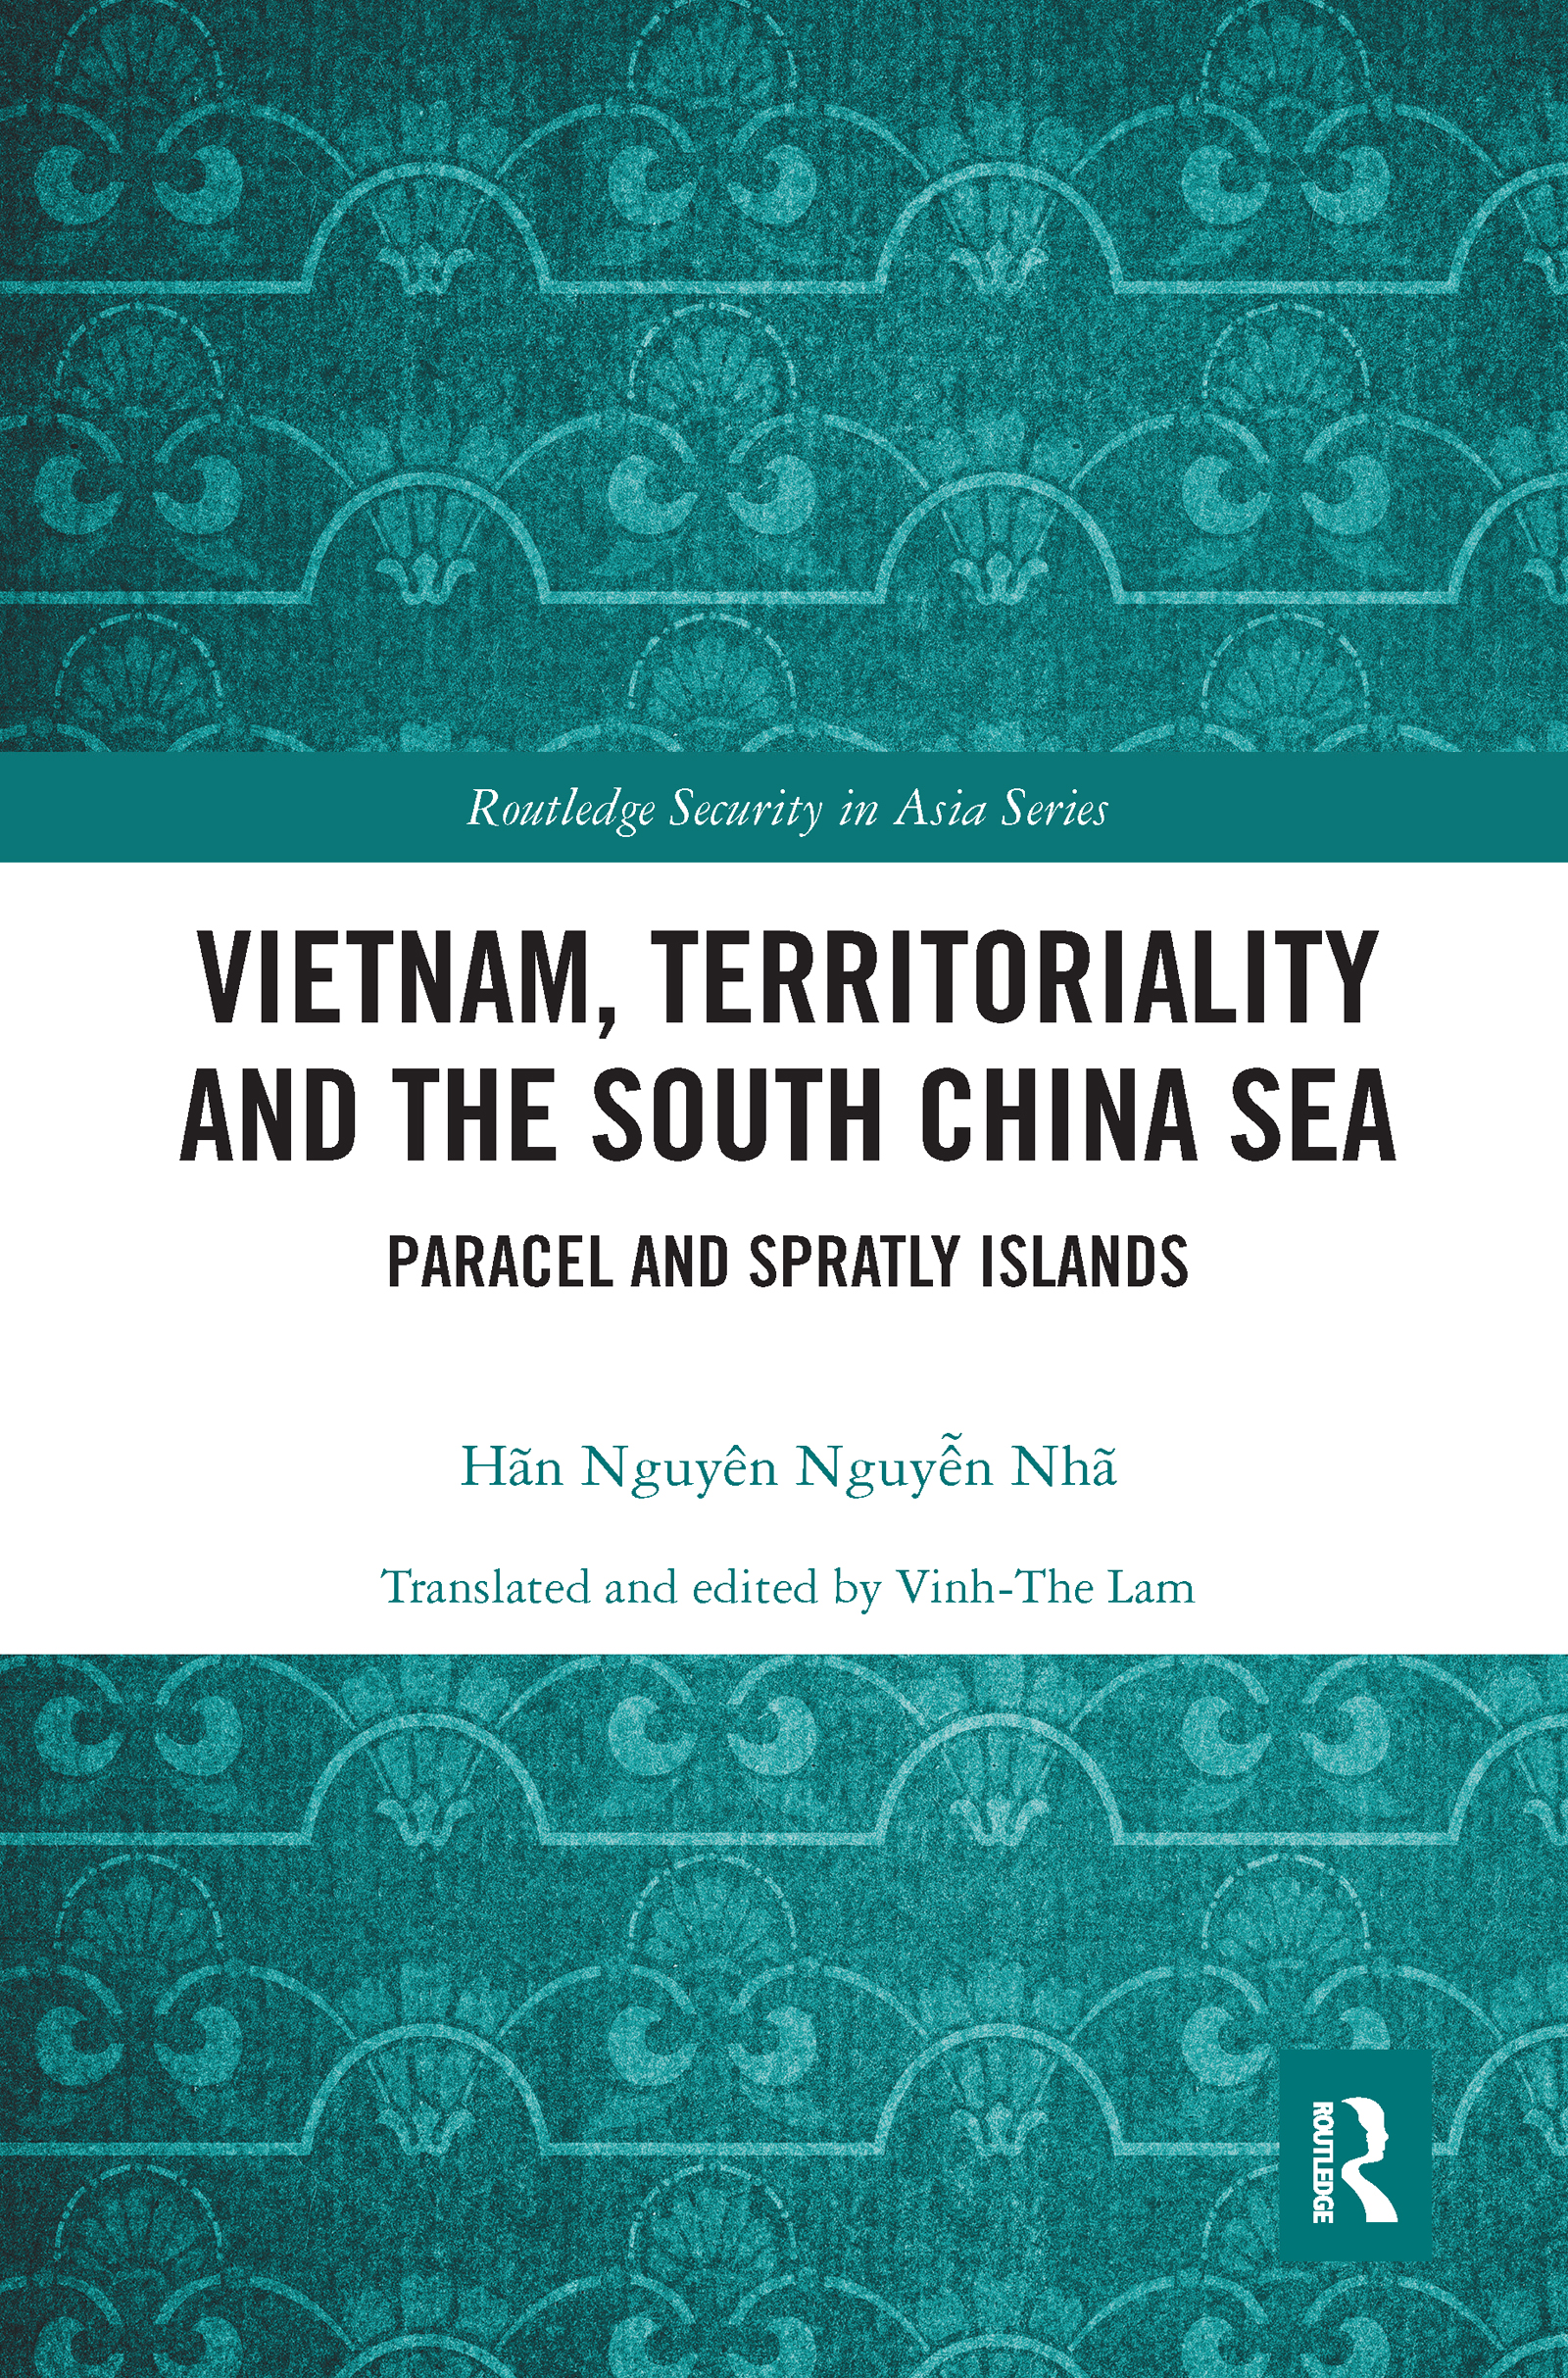 Vietnam, Territoriality and the South China Sea